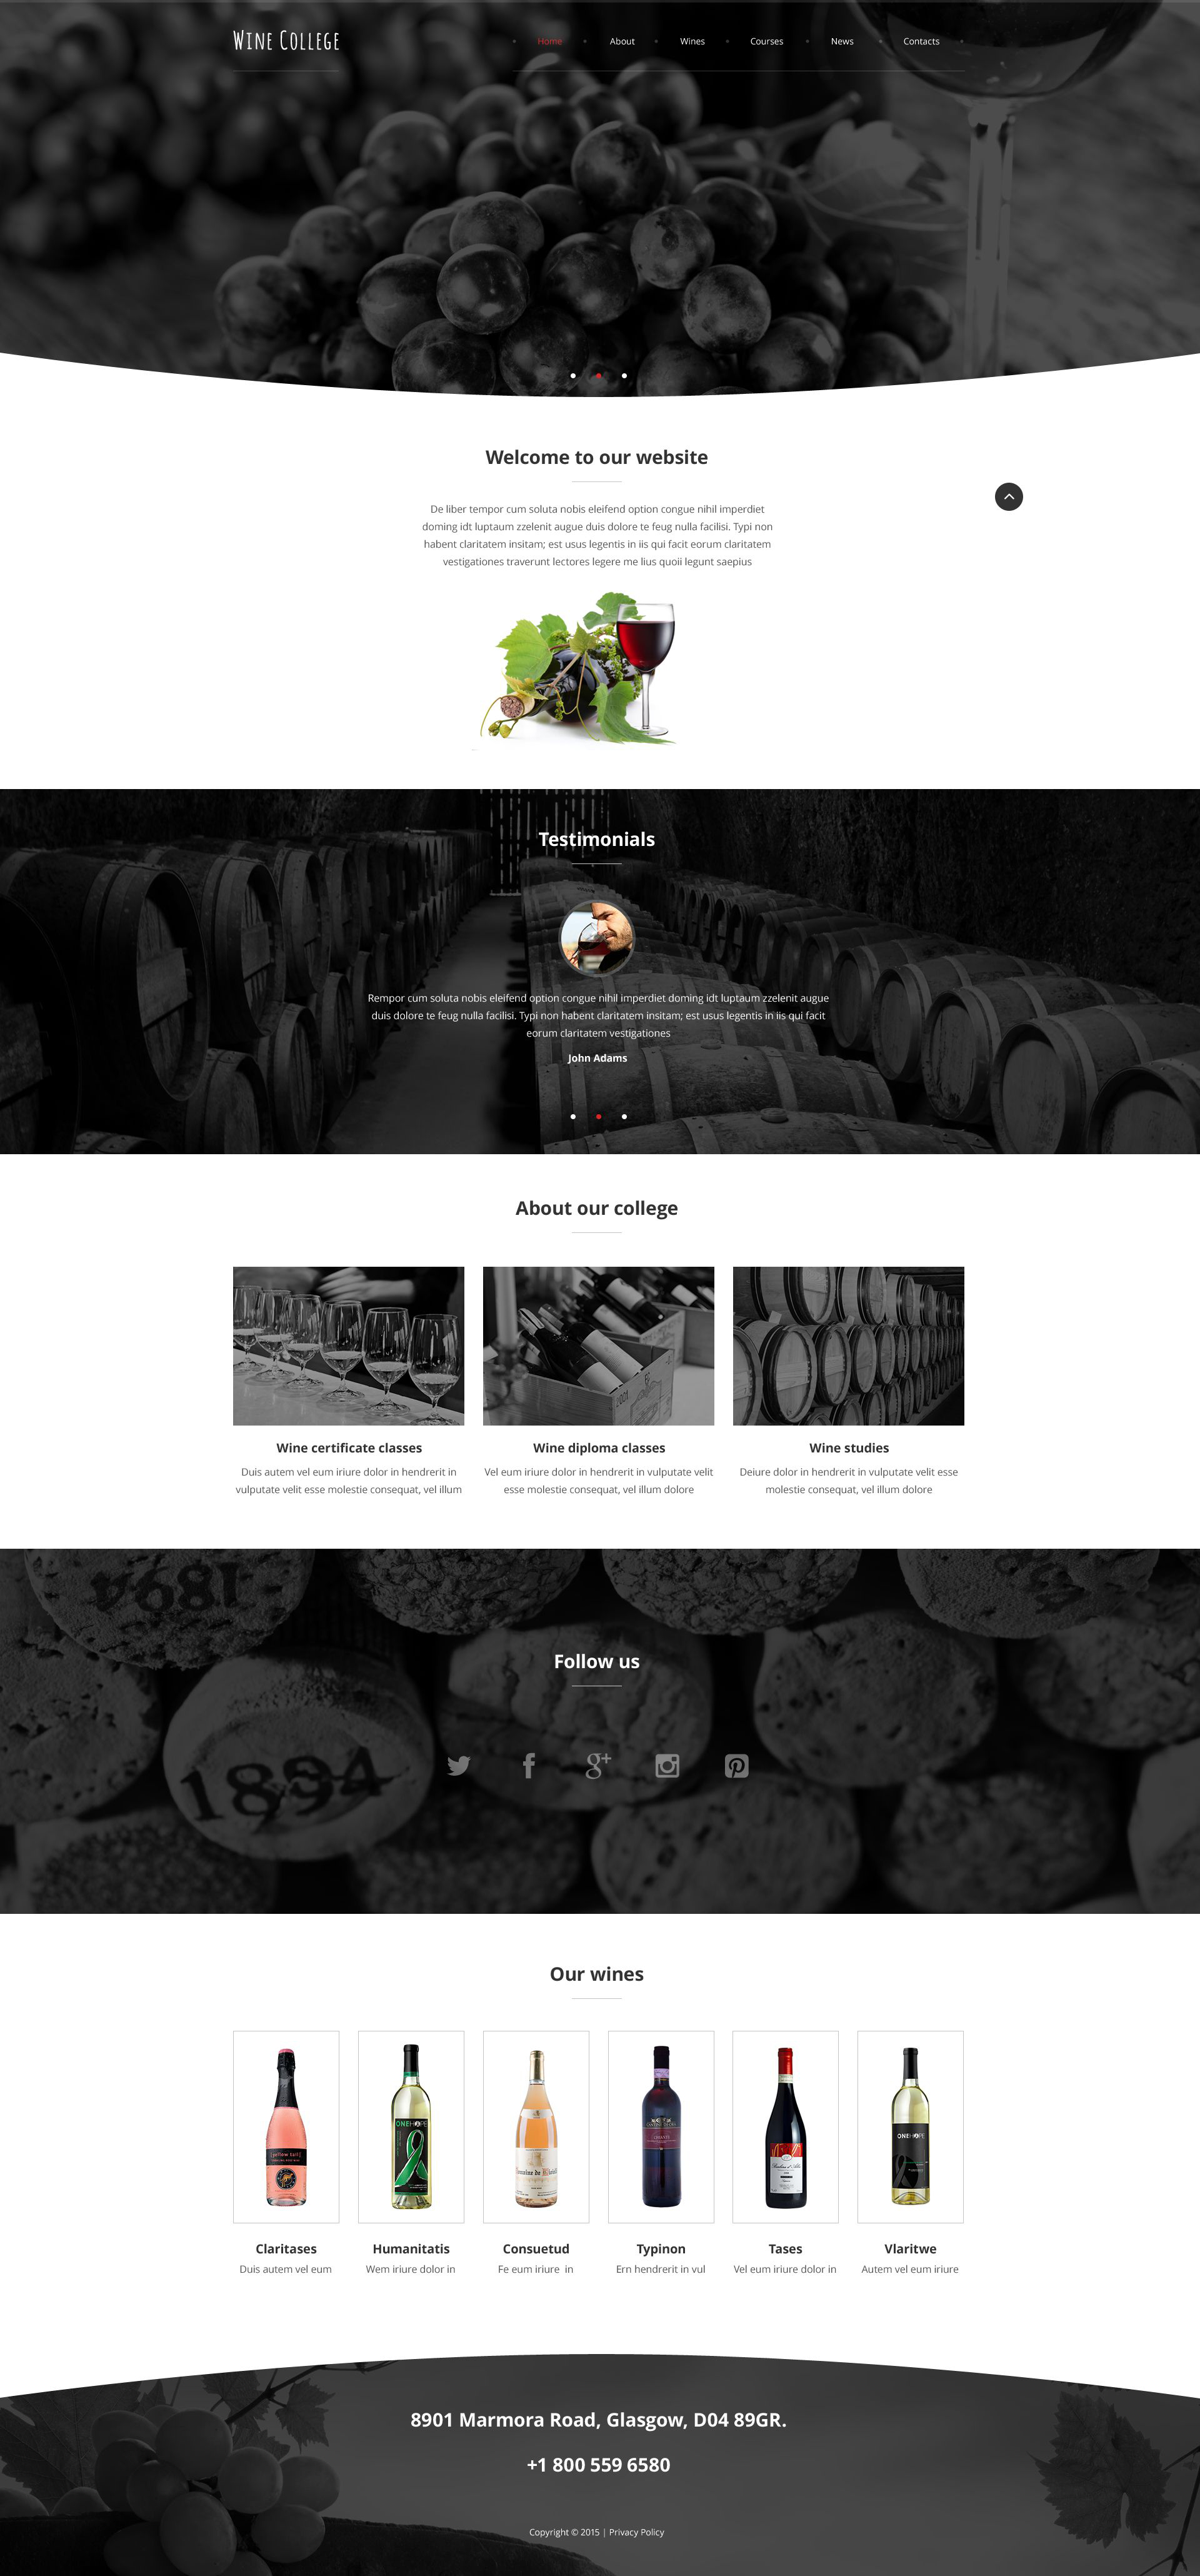 The Wine Blog Responsive Javascript Animated Design 53813, one of the best website templates of its kind (agriculture, most popular), also known as wine blog website template, post website template, winery website template, production website template, grape website template, collection website template, red website template, white rose website template, bubbly website template, kosher website template, Champagne dry website template, traditions website template, cabernet website template, sauvignon website template, chardonnay website template, Muscat Pinot Noir bottles website template, cork website template, Bordeaux Bourgogne glass website template, taste restaurant website template, alcohol website template, bottle website template, celebration website template, barrels and related with wine blog, post, winery, production, grape, collection, red, white rose, bubbly, kosher, Champagne dry, traditions, cabernet, sauvignon, chardonnay, Muscat Pinot Noir bottles, cork, Bordeaux Bourgogne glass, taste restaurant, alcohol, bottle, celebration, barrels, etc.